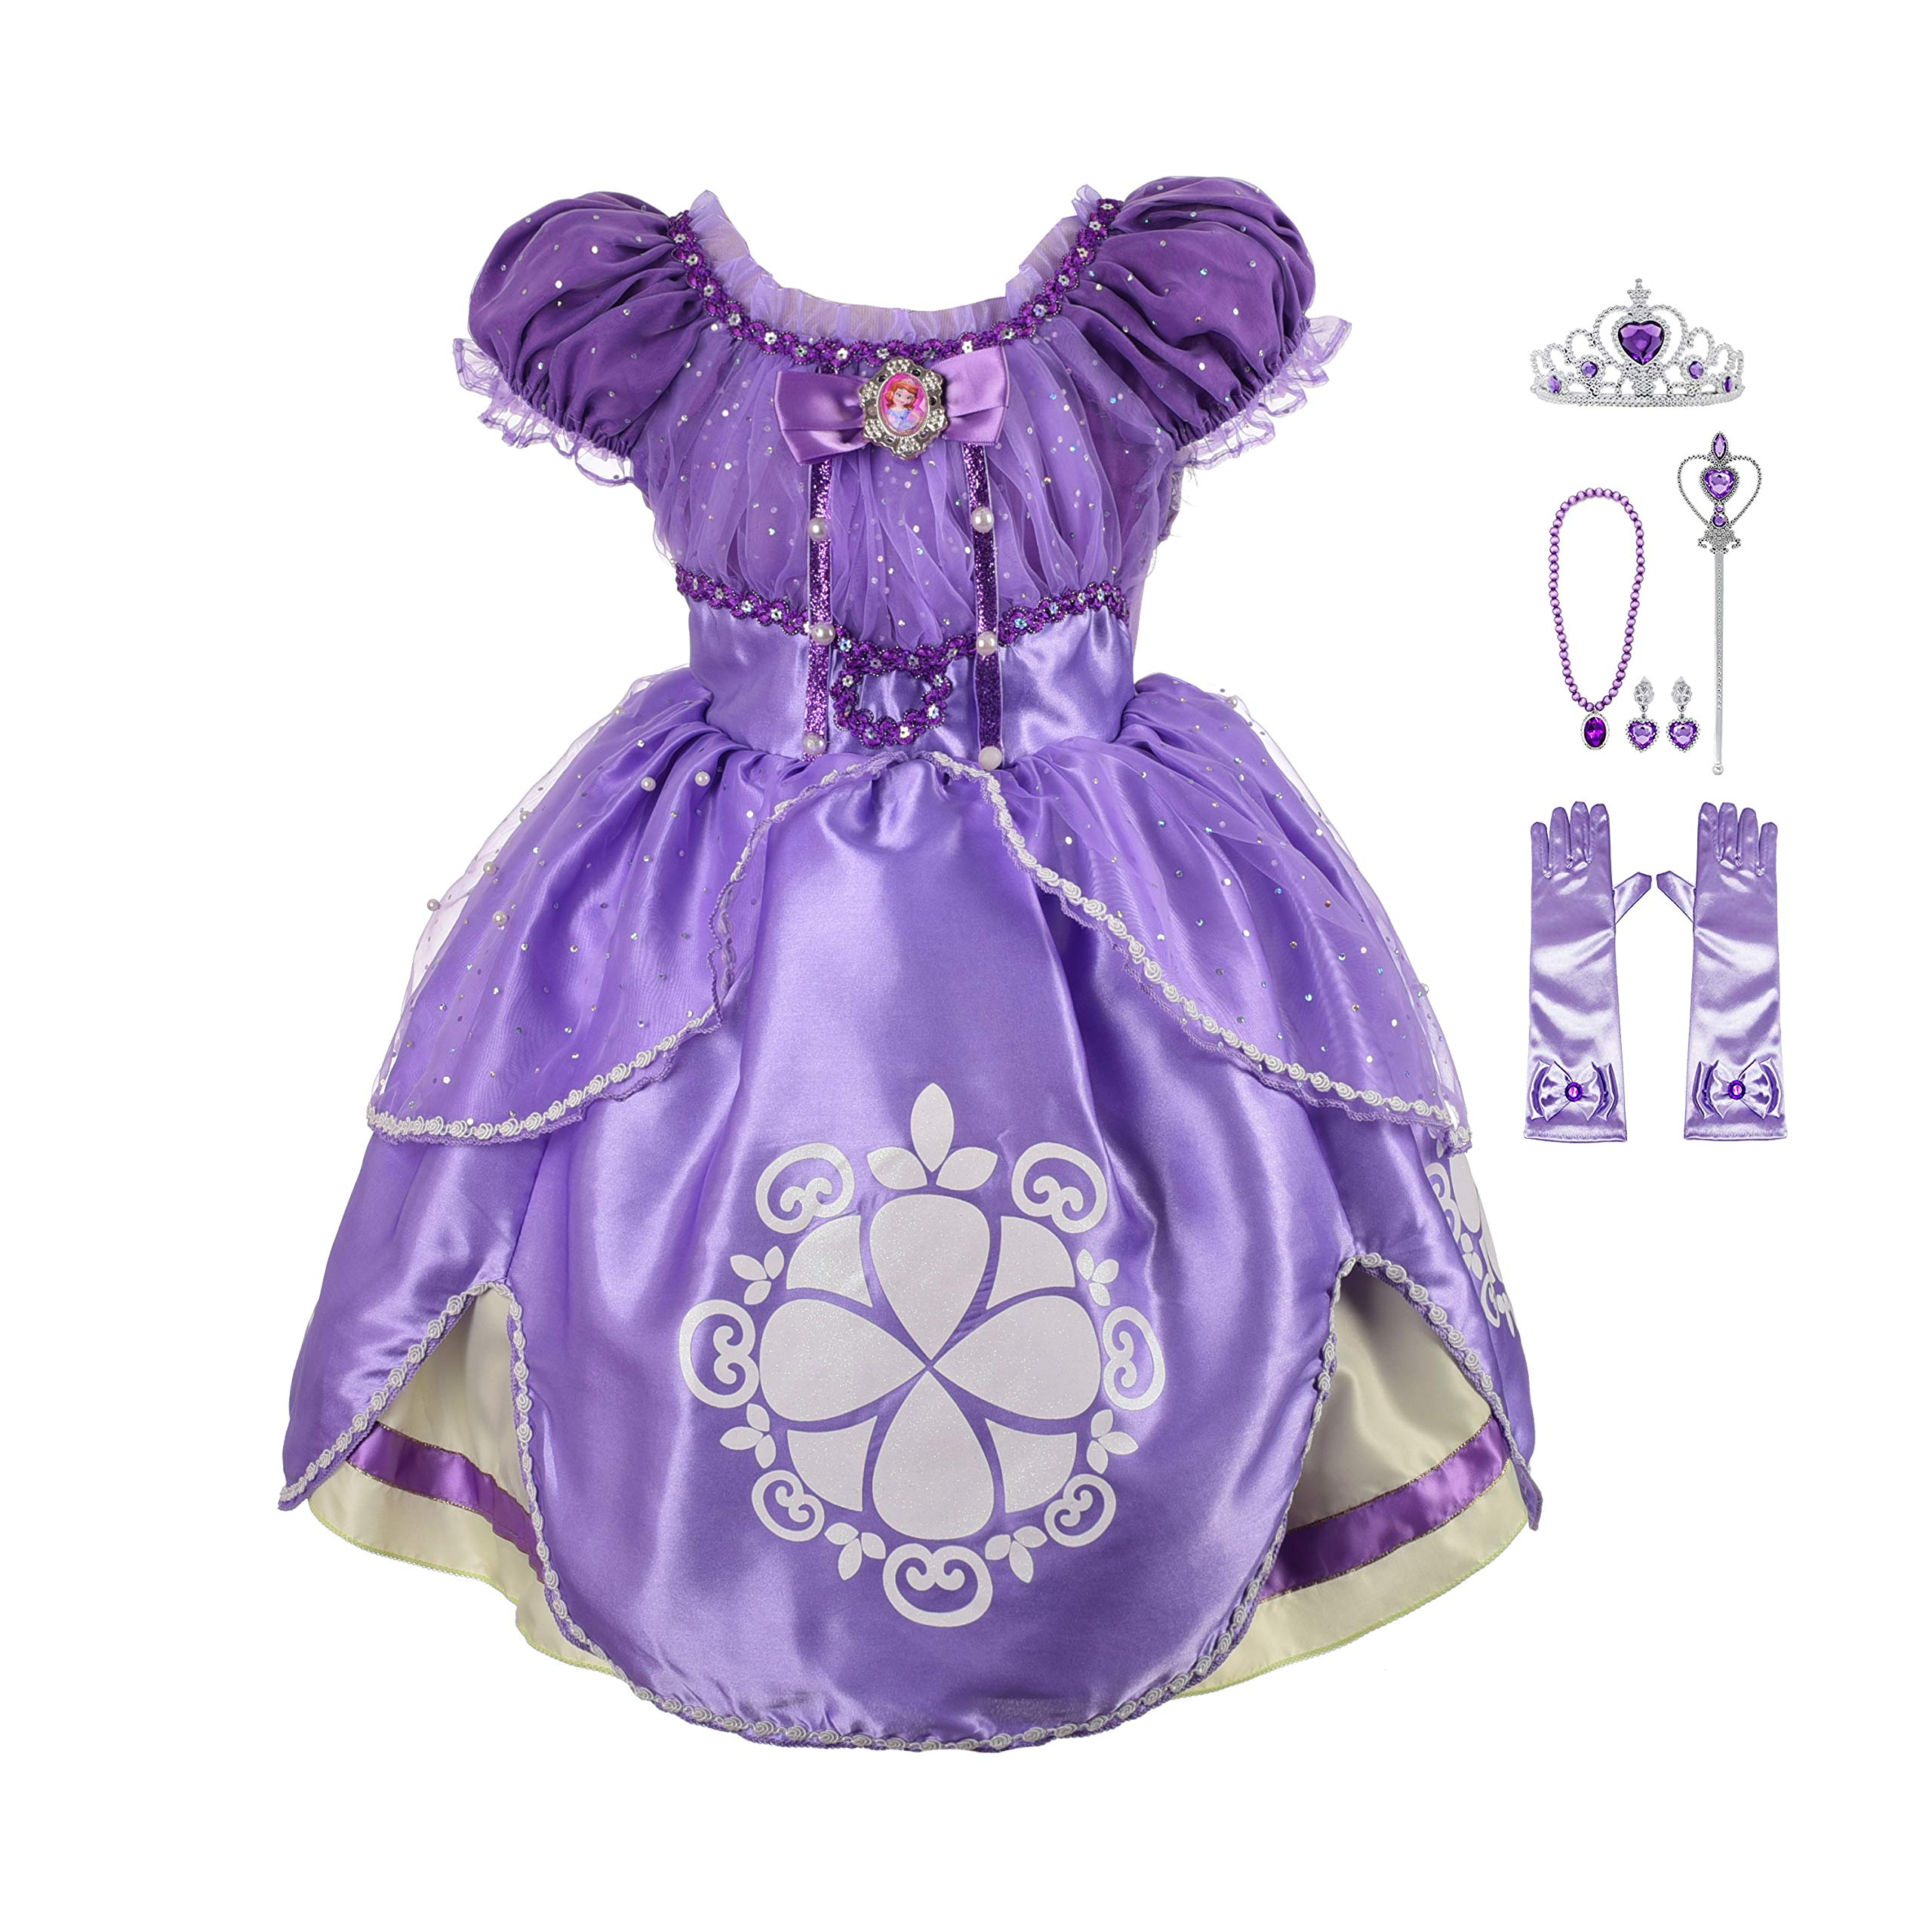 Lito Angels Girls' Princess Sofia The First Dress Up Costume Cosplay Fancy Party Dress Outfit with Accessories Size 4T